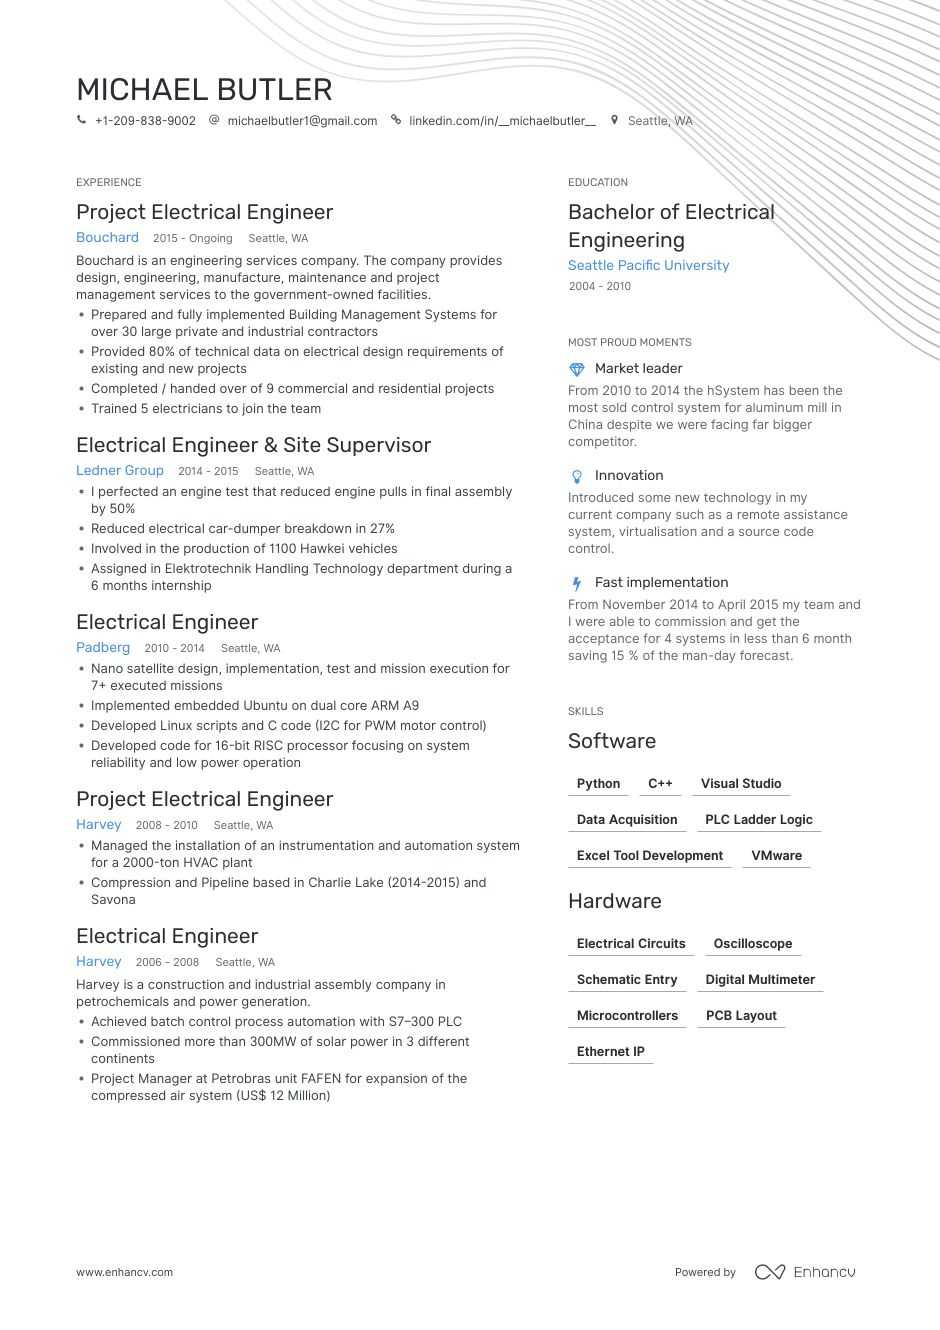 electrical engineer resume examples pro tips featured enhancv engineering student night Resume Engineering Student Resume Examples